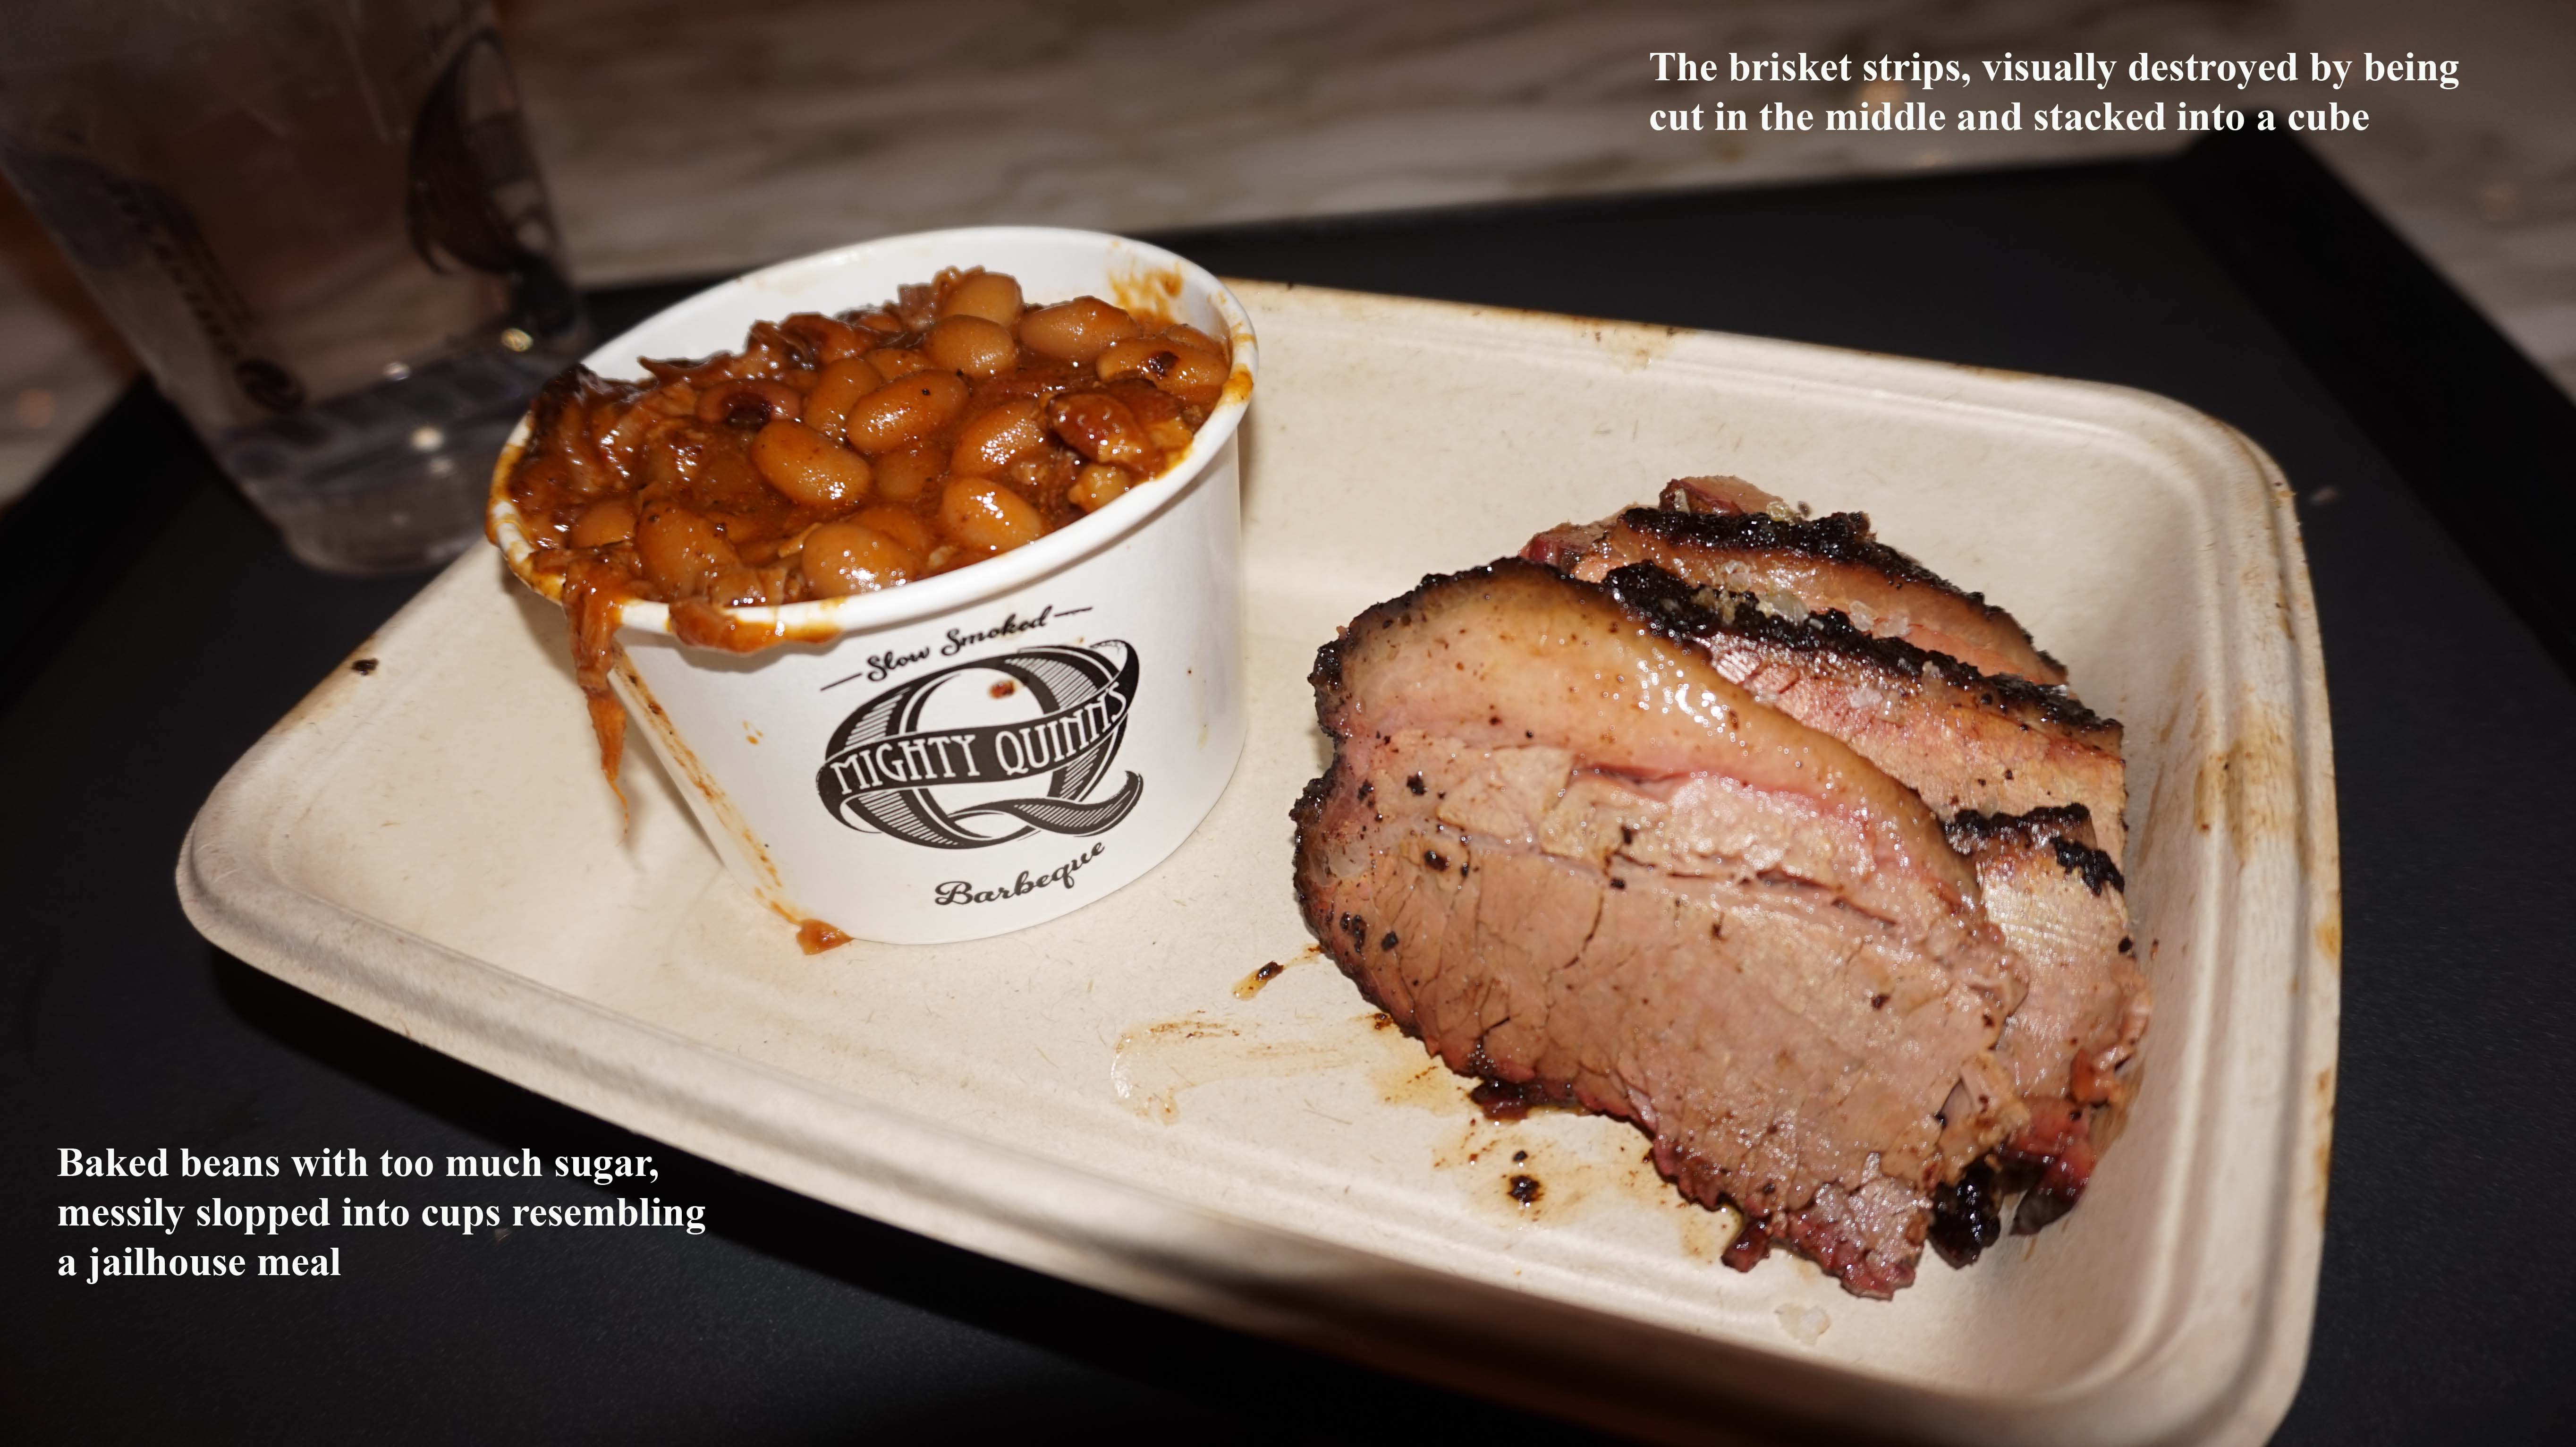 Mighty quinns bad plating of brisket and beans